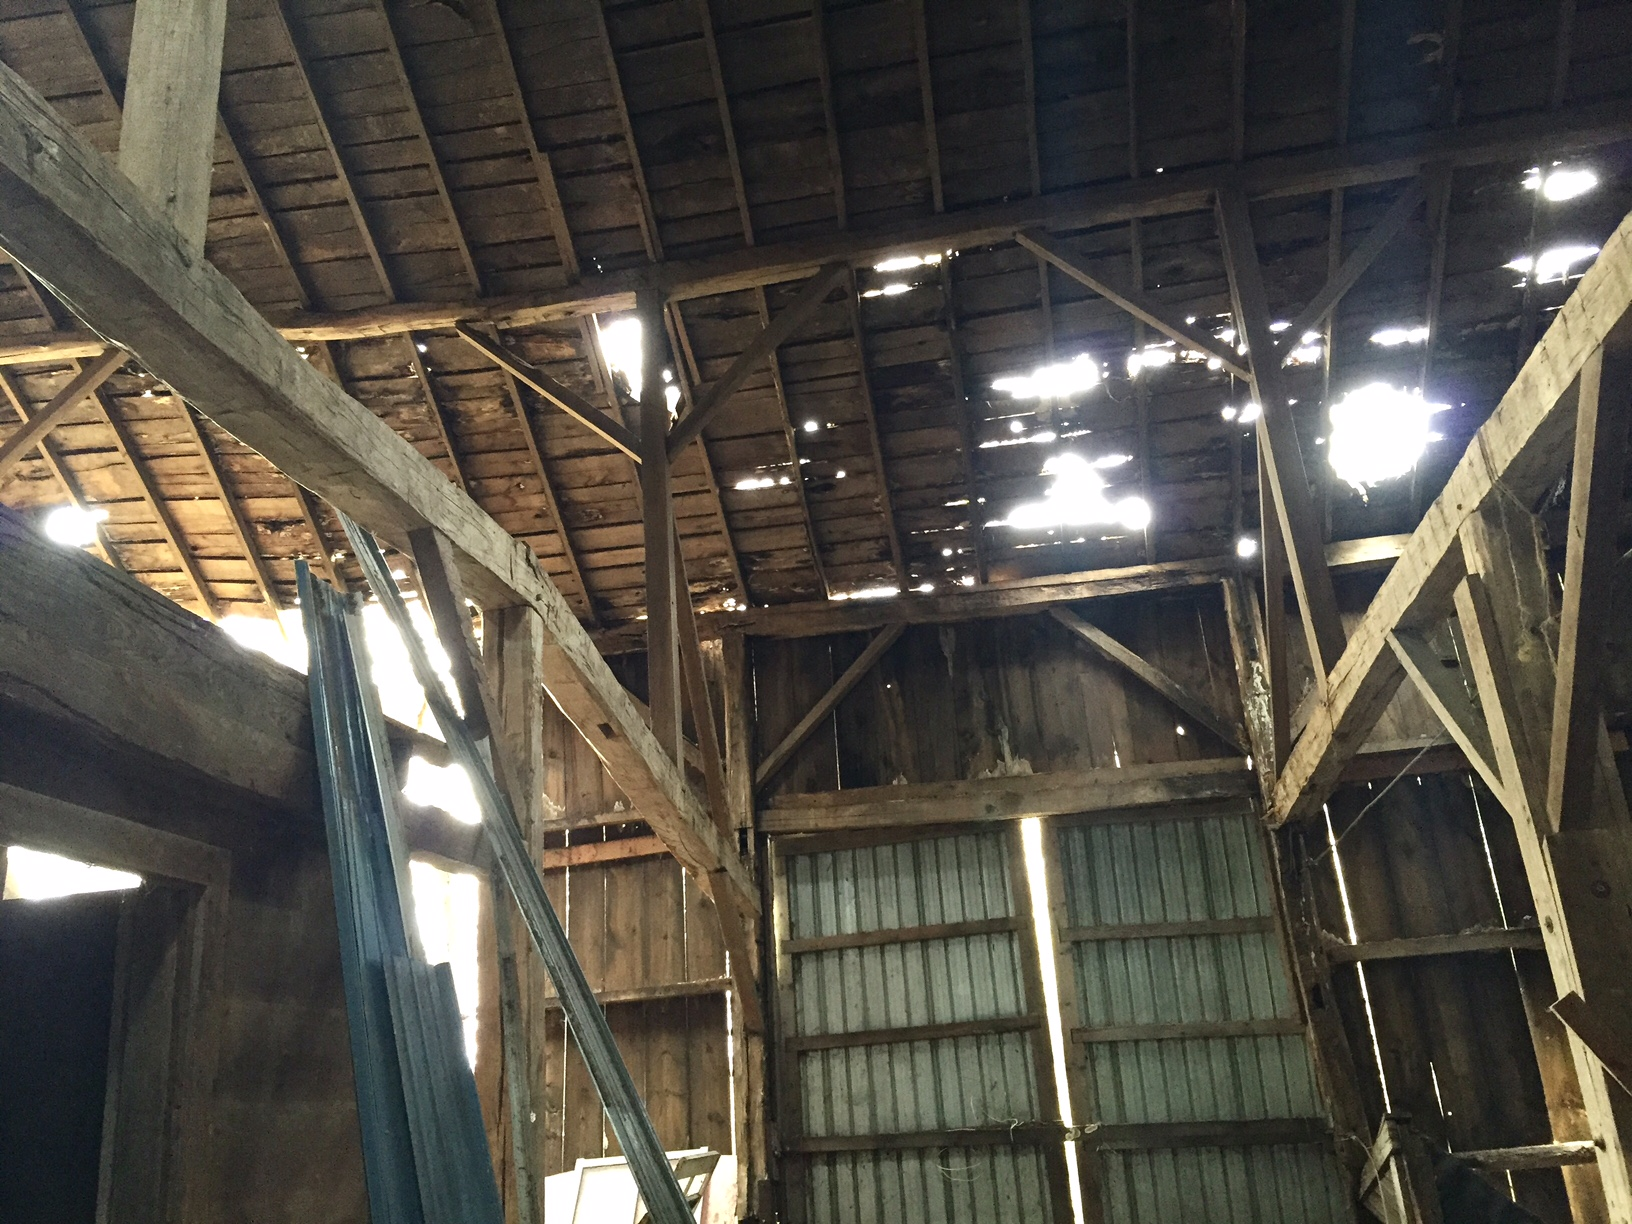 How to Tear Down and Get Rid of an Old Barn, Plus How NOT to Sell